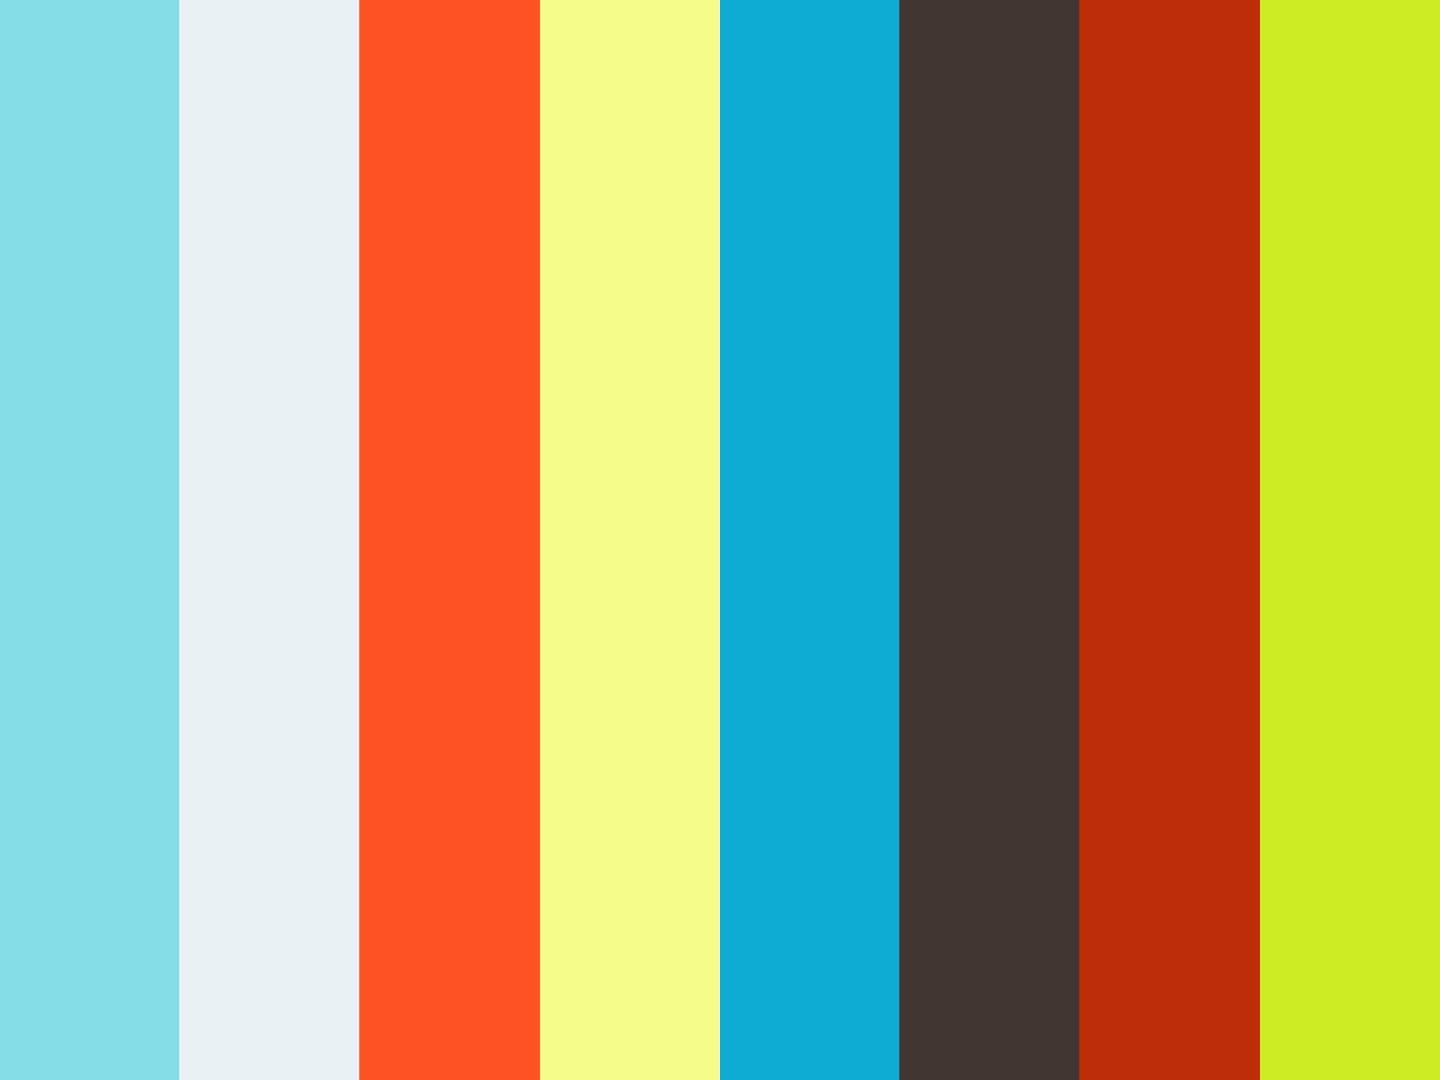 07 Assalamualaikum on Vimeo